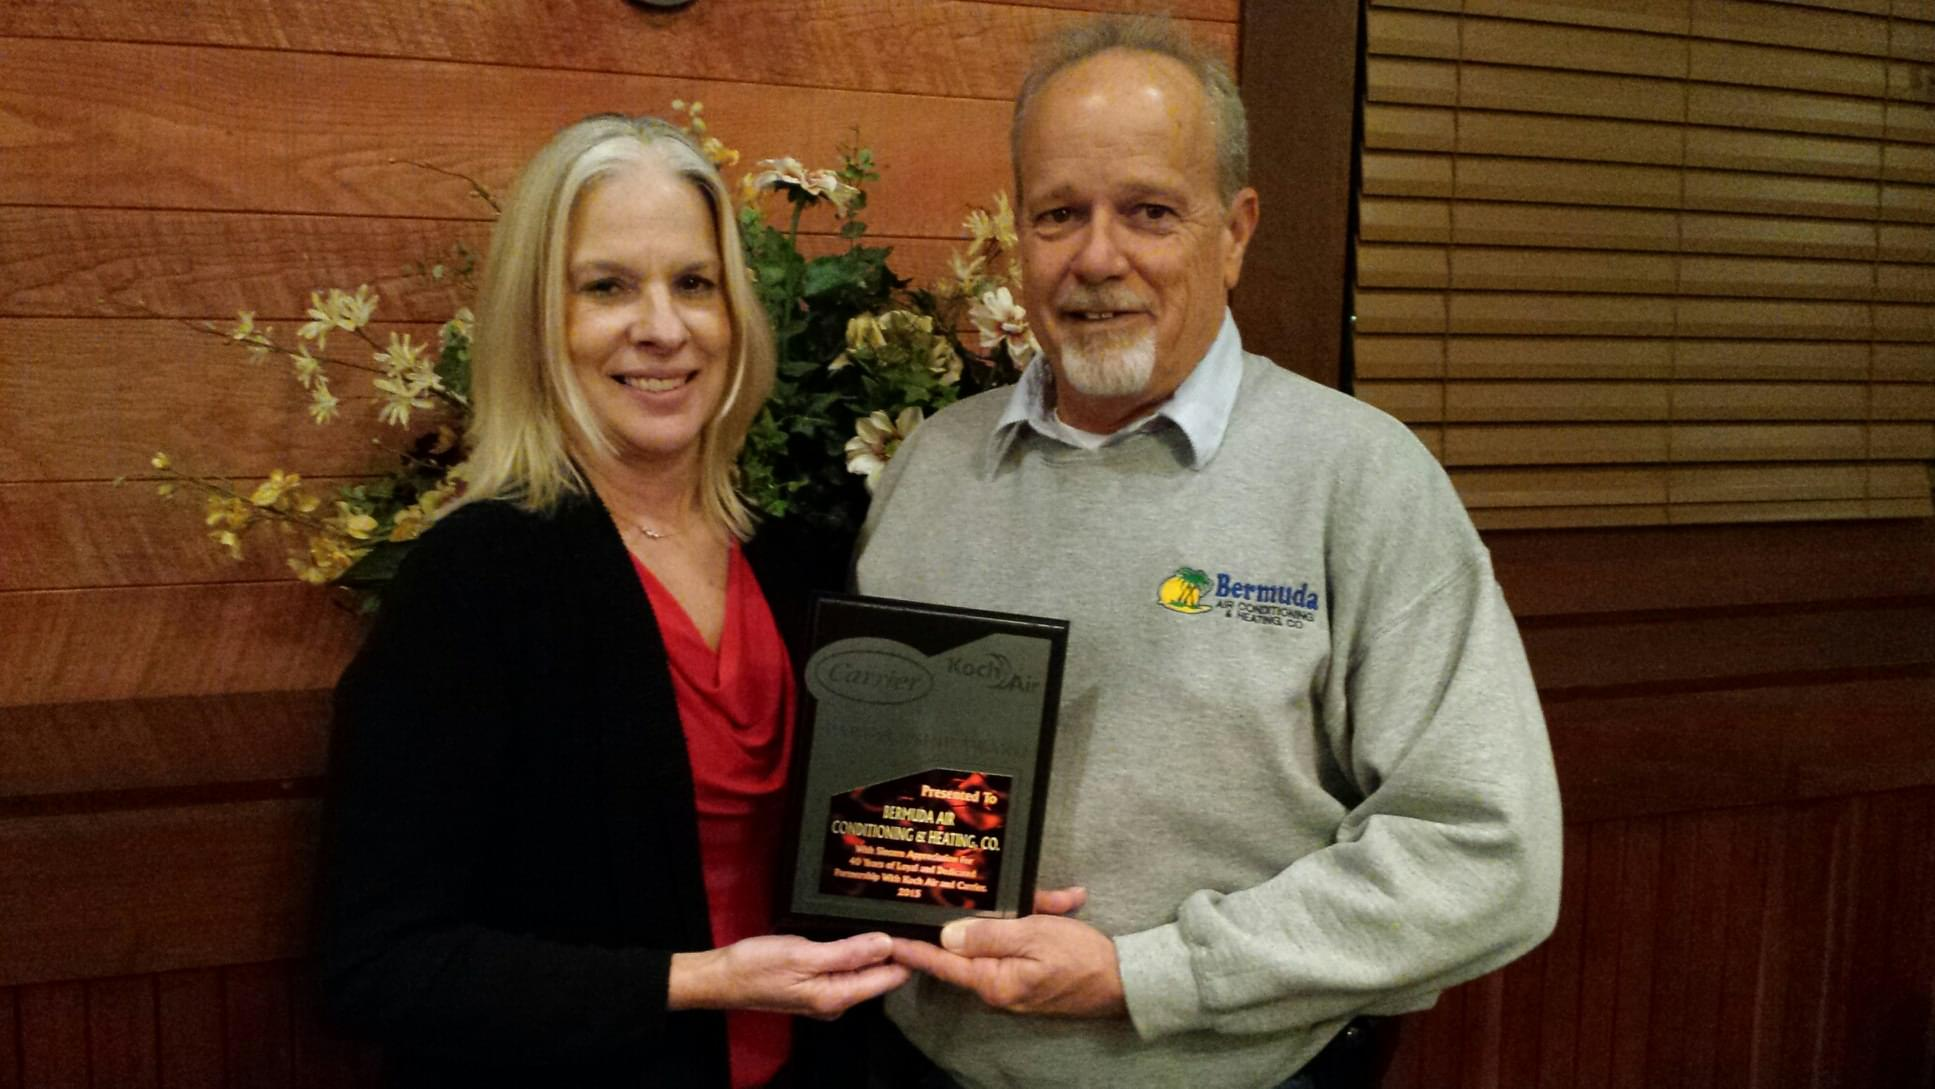 Bermuda Heating & Cooling Accepts 40 Year Carrier Dealer Award